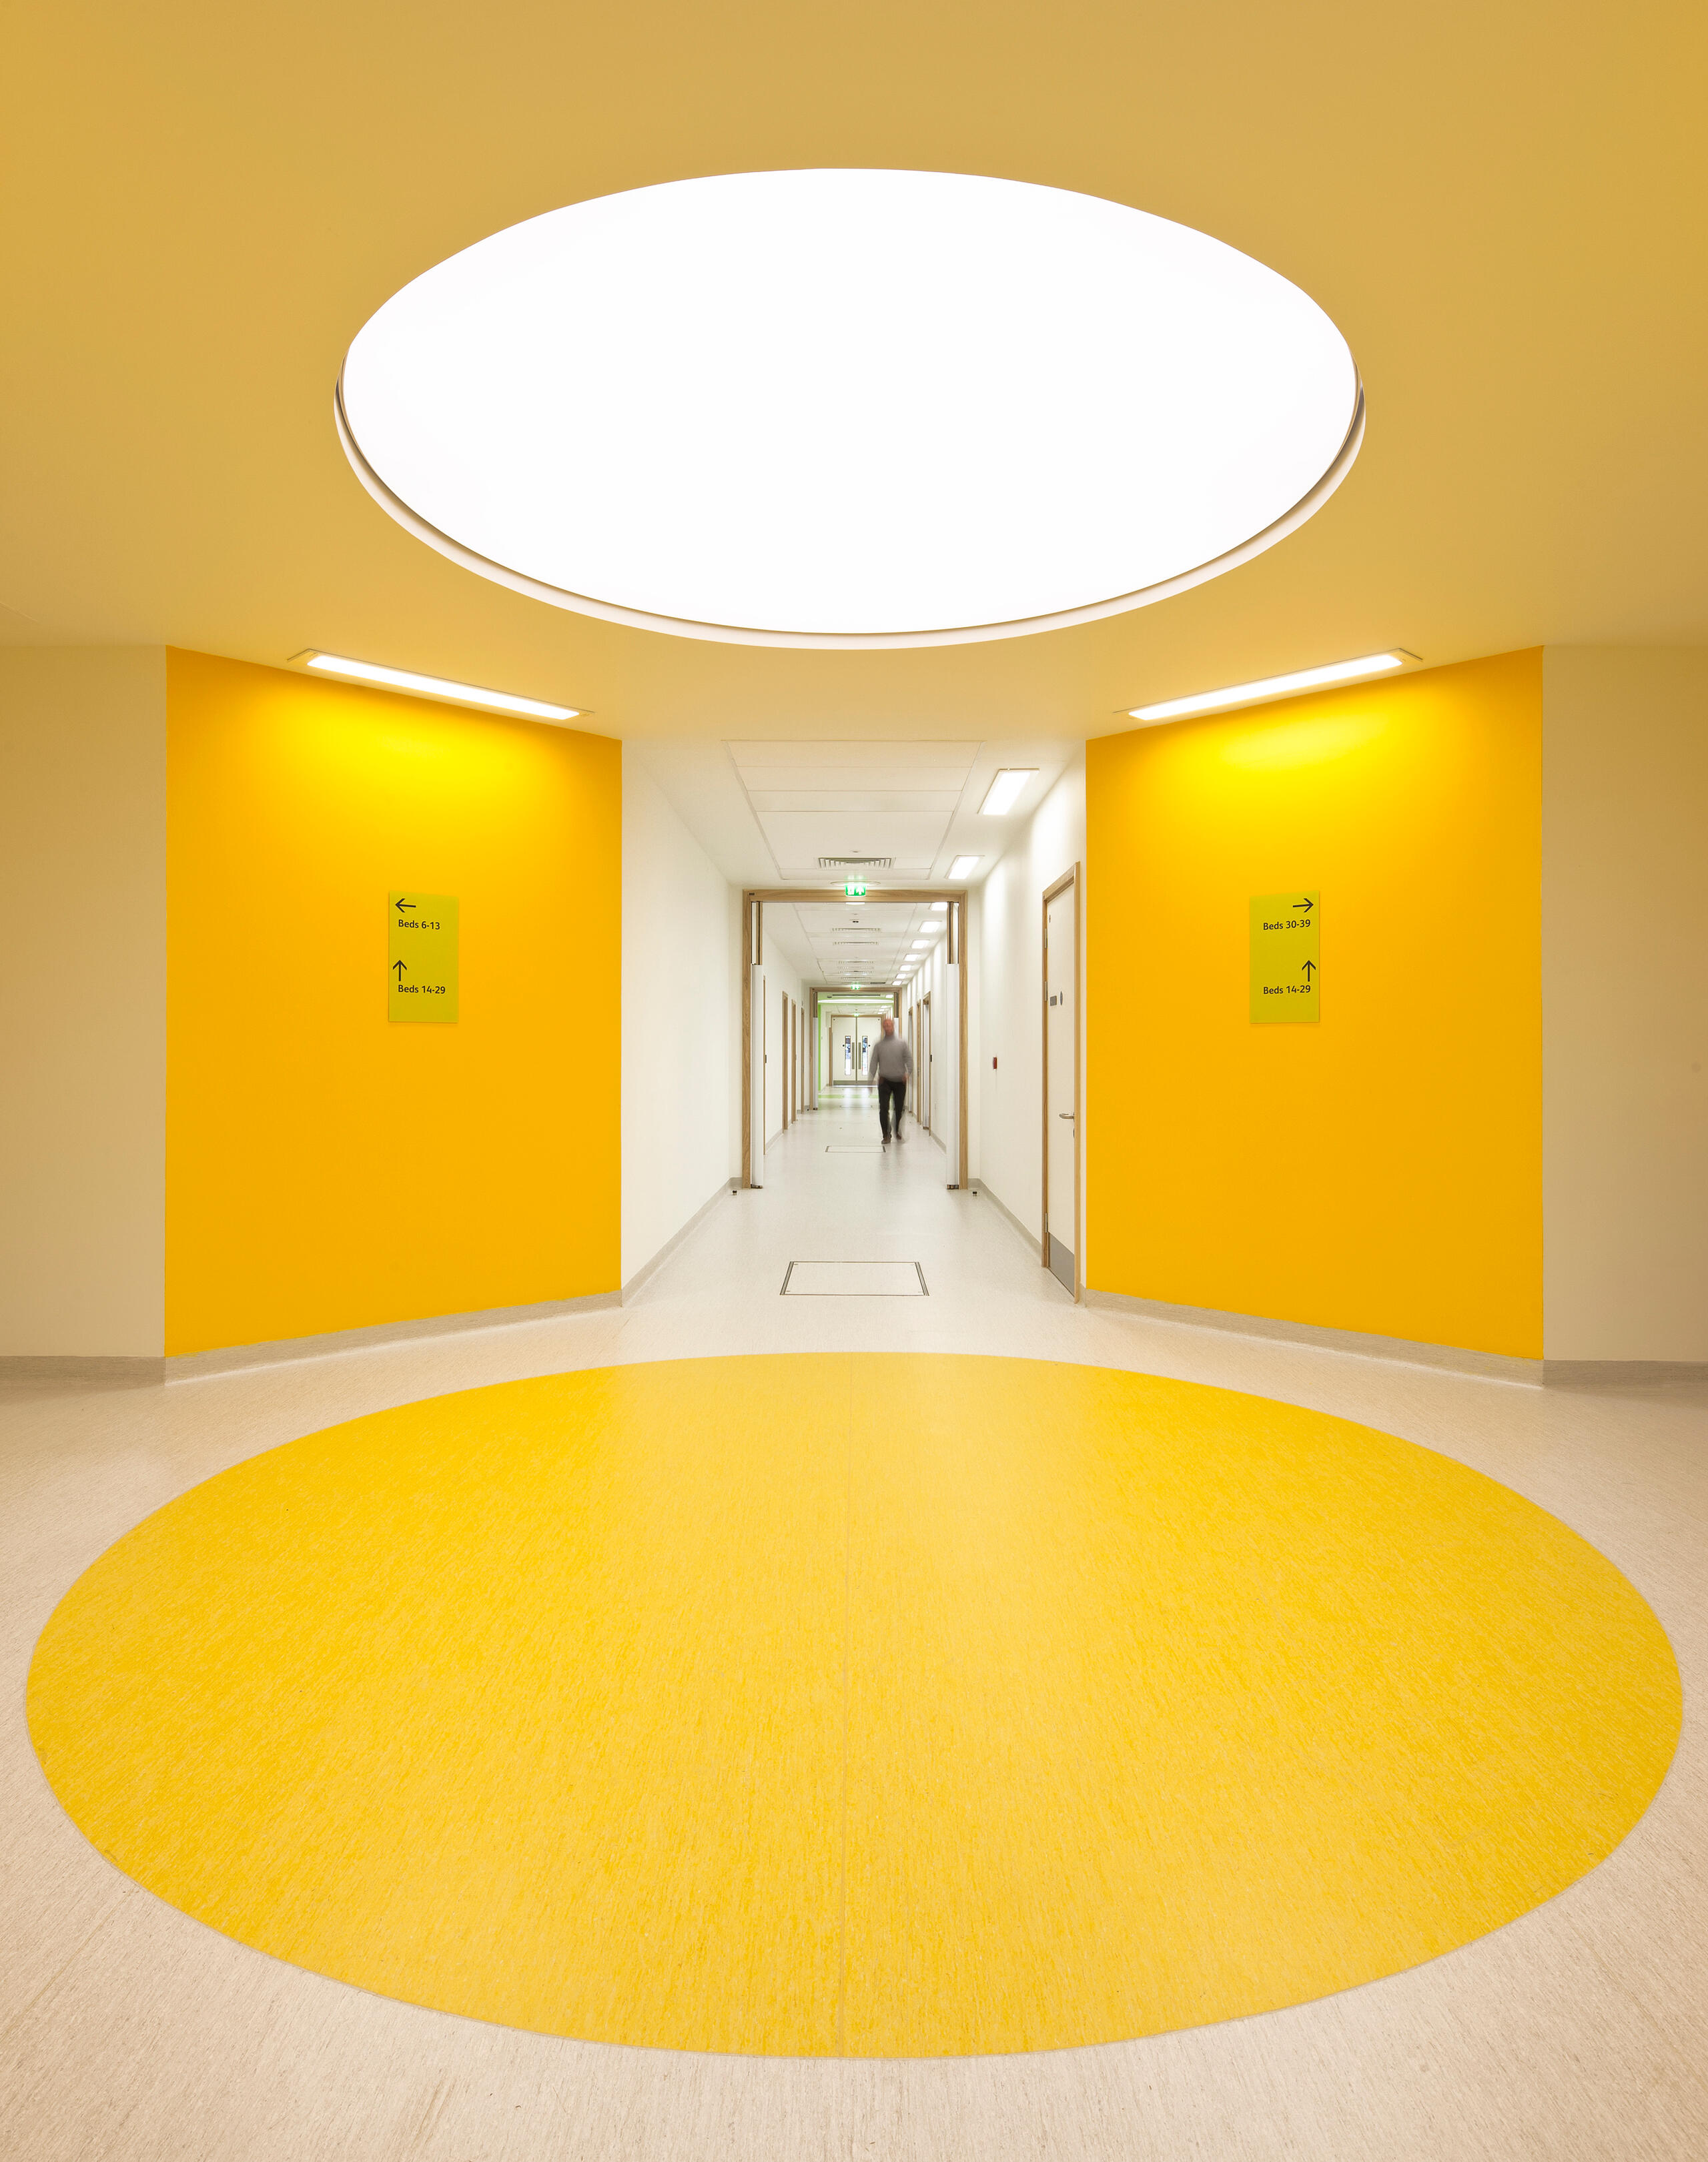 intersection of hallways inside Alder Hey Children's Health Park with yellow circle floor graphic, yellow walls and circular skylight above